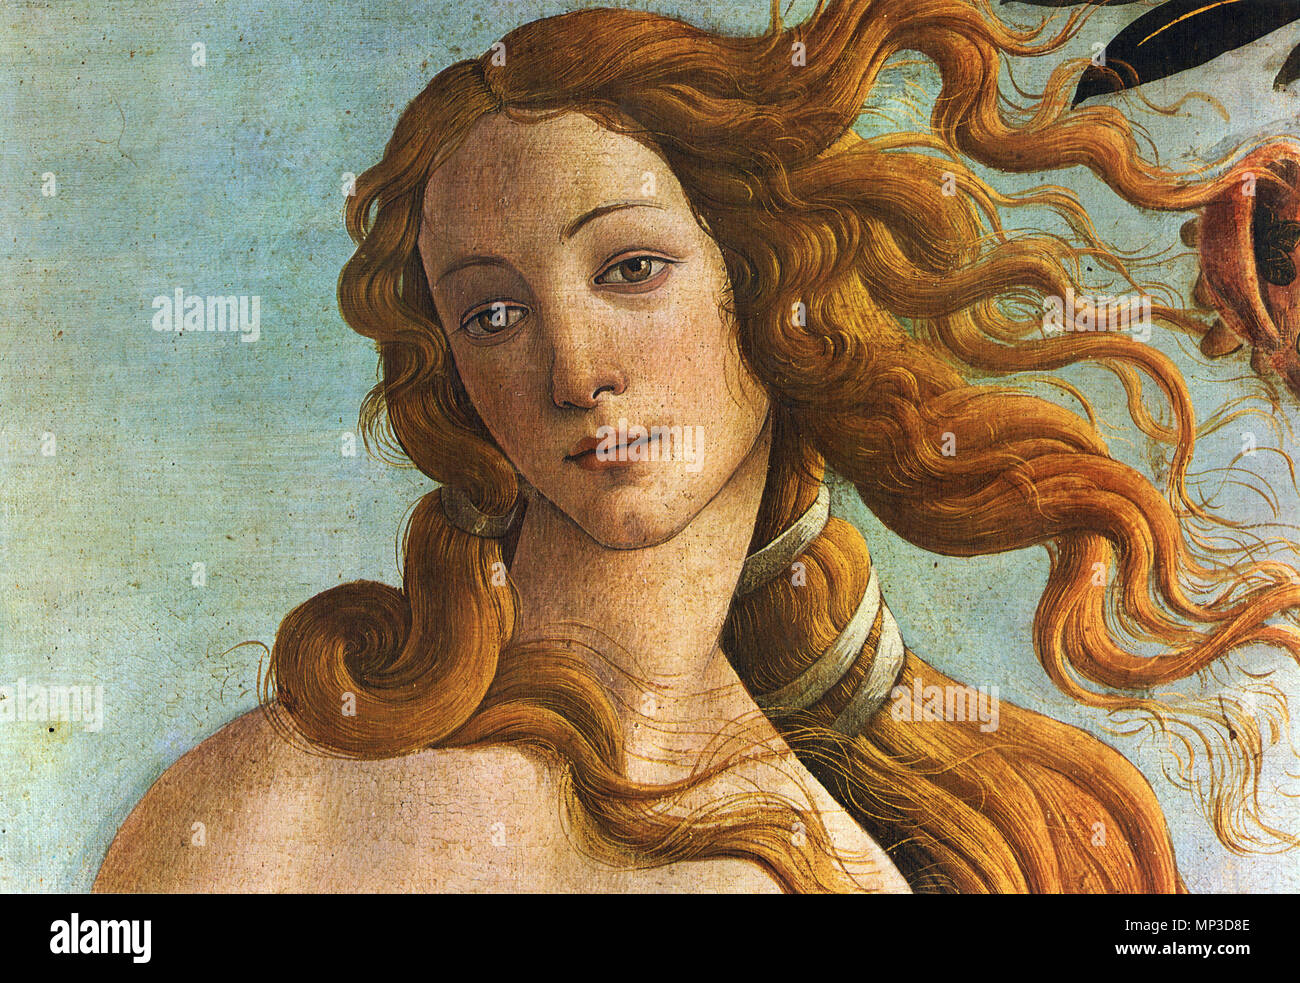 The Birth of Venus (Detail) . Pintura renacentista . 1480.    Sandro Botticelli  (1445–1510)      Alternative names Birth name: Allessandro Filipepi Sandro Filipepi Alessandro di Mariano Filipepi Alessandro di Mariano Filipepi Botticelli  Description Italian painter and artist  Date of birth/death 1 March 1445 17 May 1510  Location of birth/death Florence Florence  Work location Florence (1469–1481), Pisa (1475), Rome (1481–1482), Florence (1482–1490), Volterra (ca. 1483), Mantua (1502), Florence (1503–1510)  Authority control  : Q5669 VIAF: 19686406 ISNI: 0000 0001 2099 4768 ULAN: 500015254 L Stock Photo